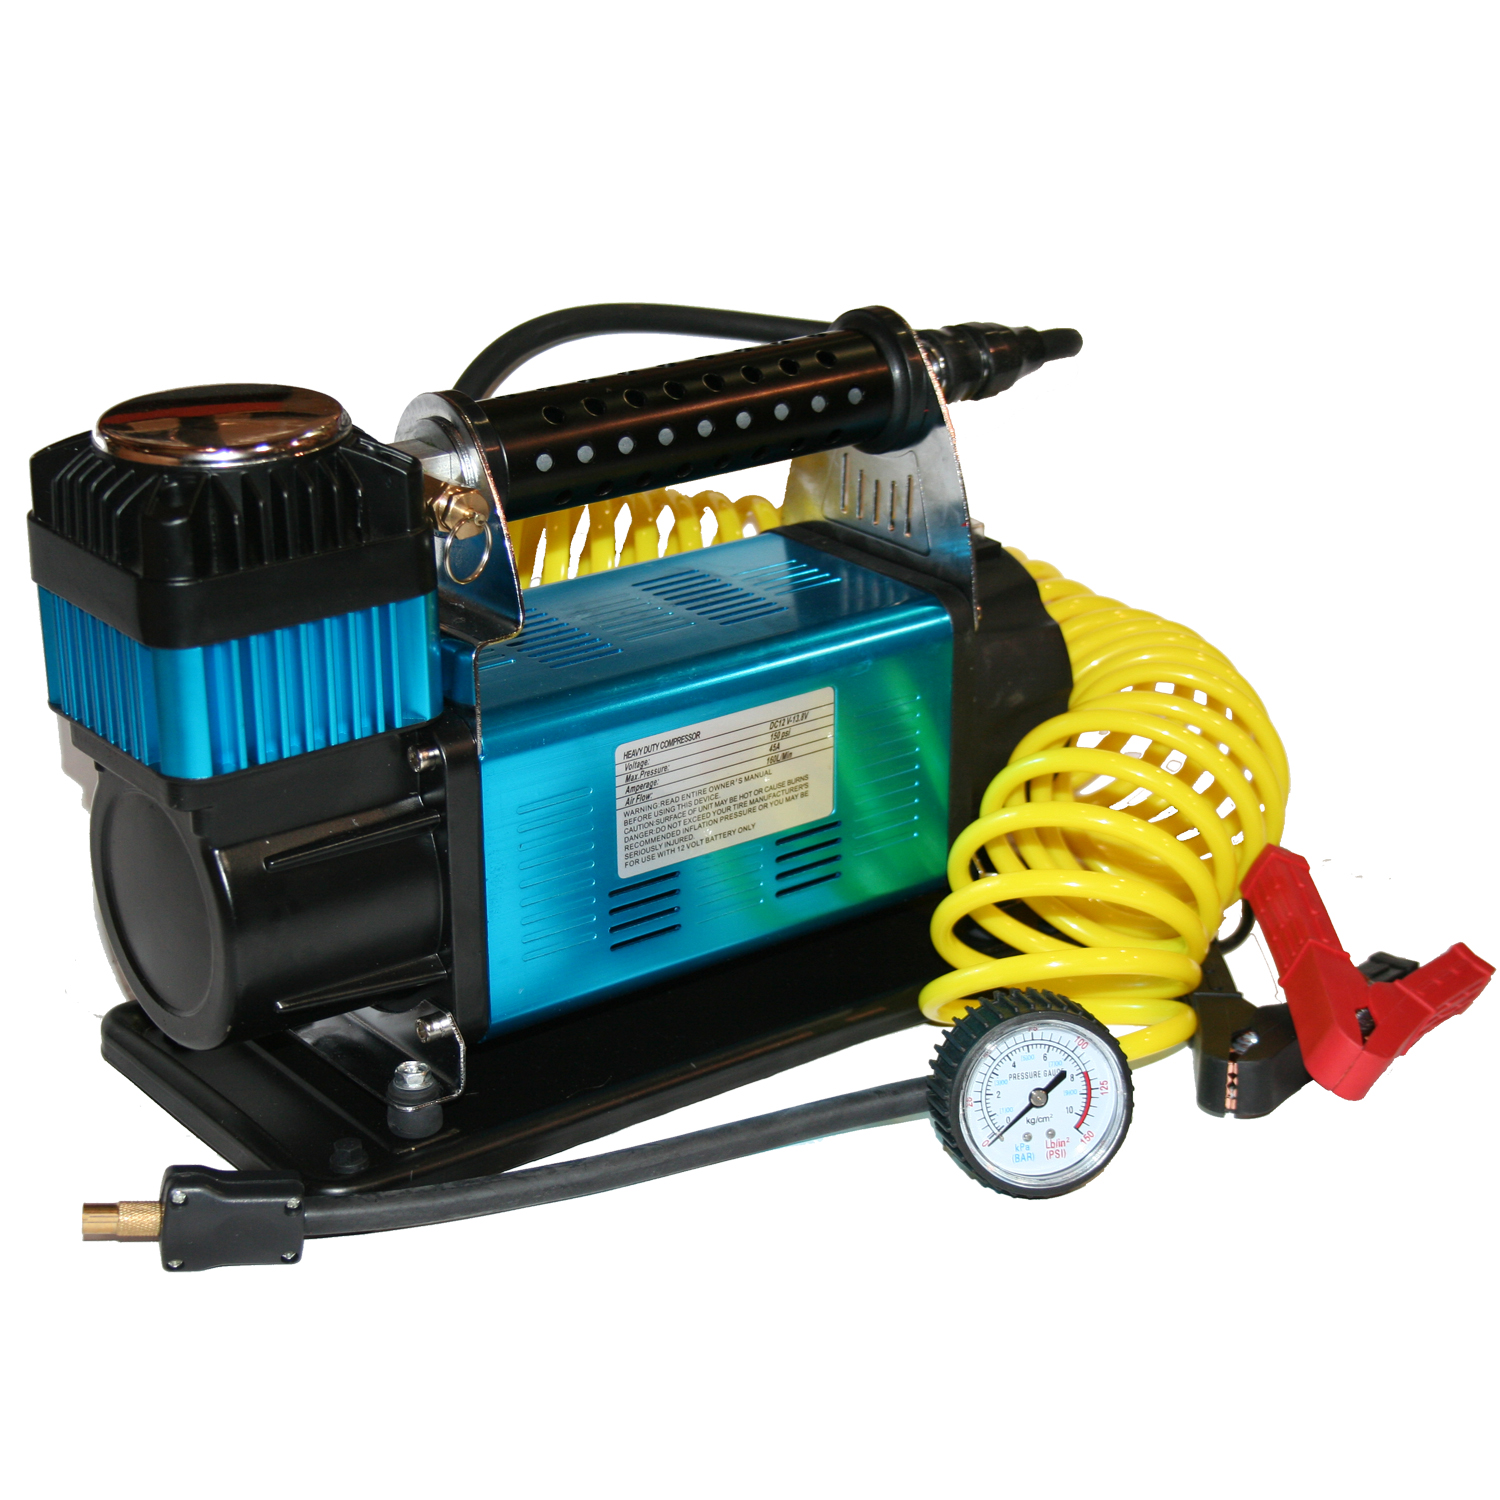 150 PSI Air Compressor Portable Automatic Bulldog Winch